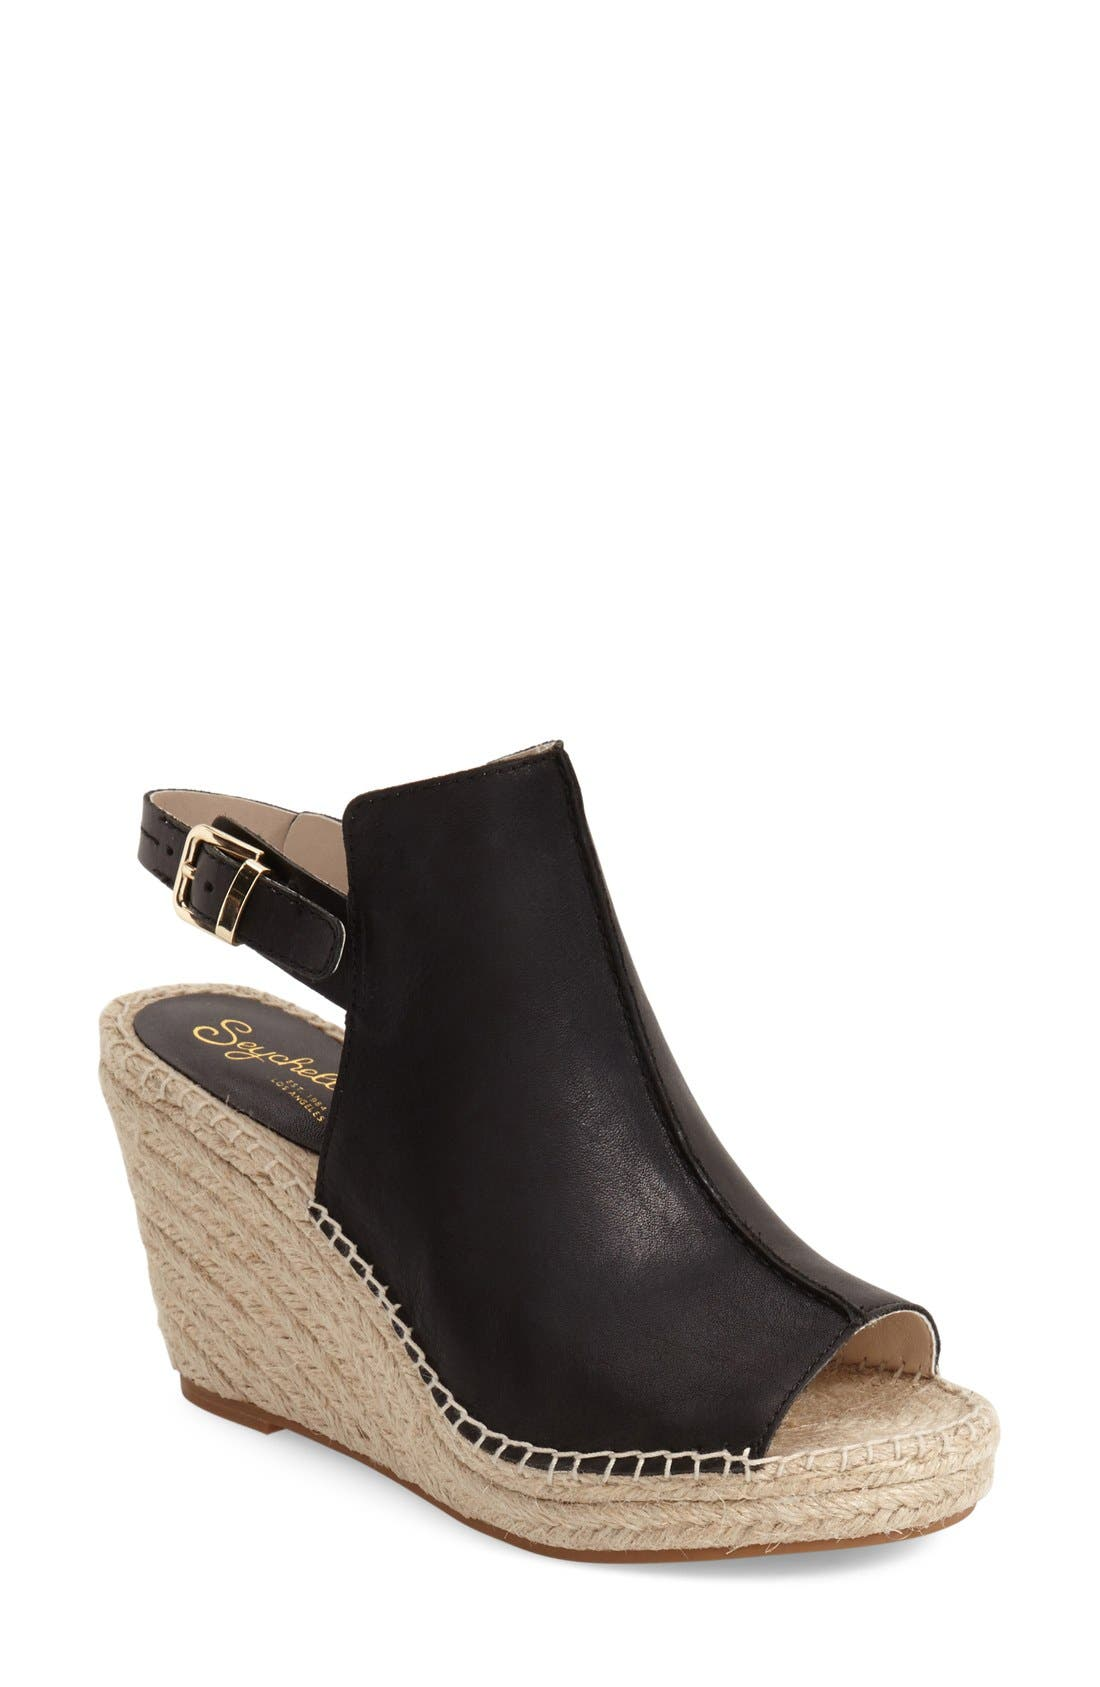 'Charismatic' Espadrille Wedge,                         Main,                         color, 001